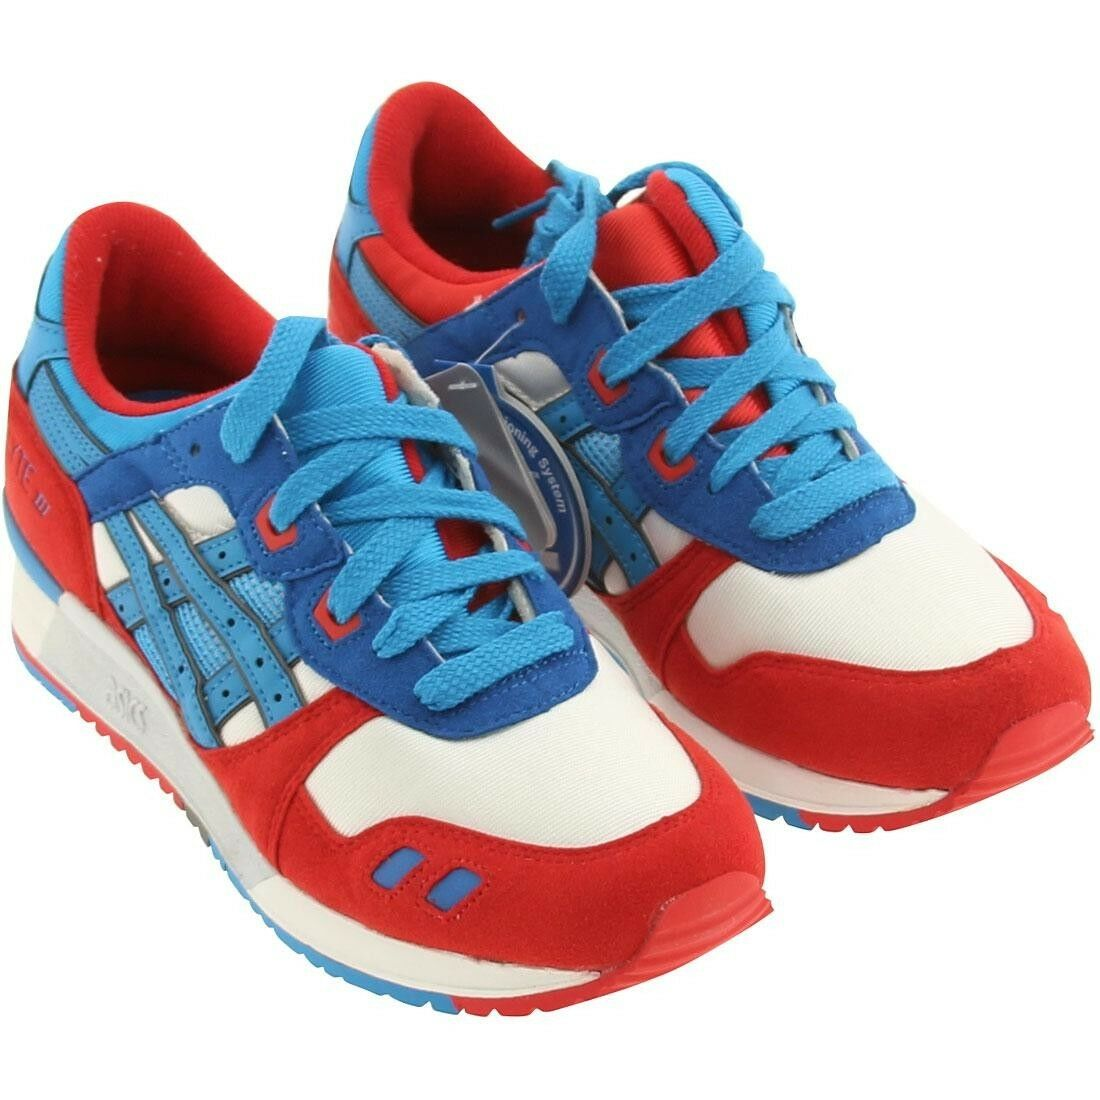 4.0 Asics Men Gel-Lyte III 3 lyte white directoire bluee captain america ronnie f